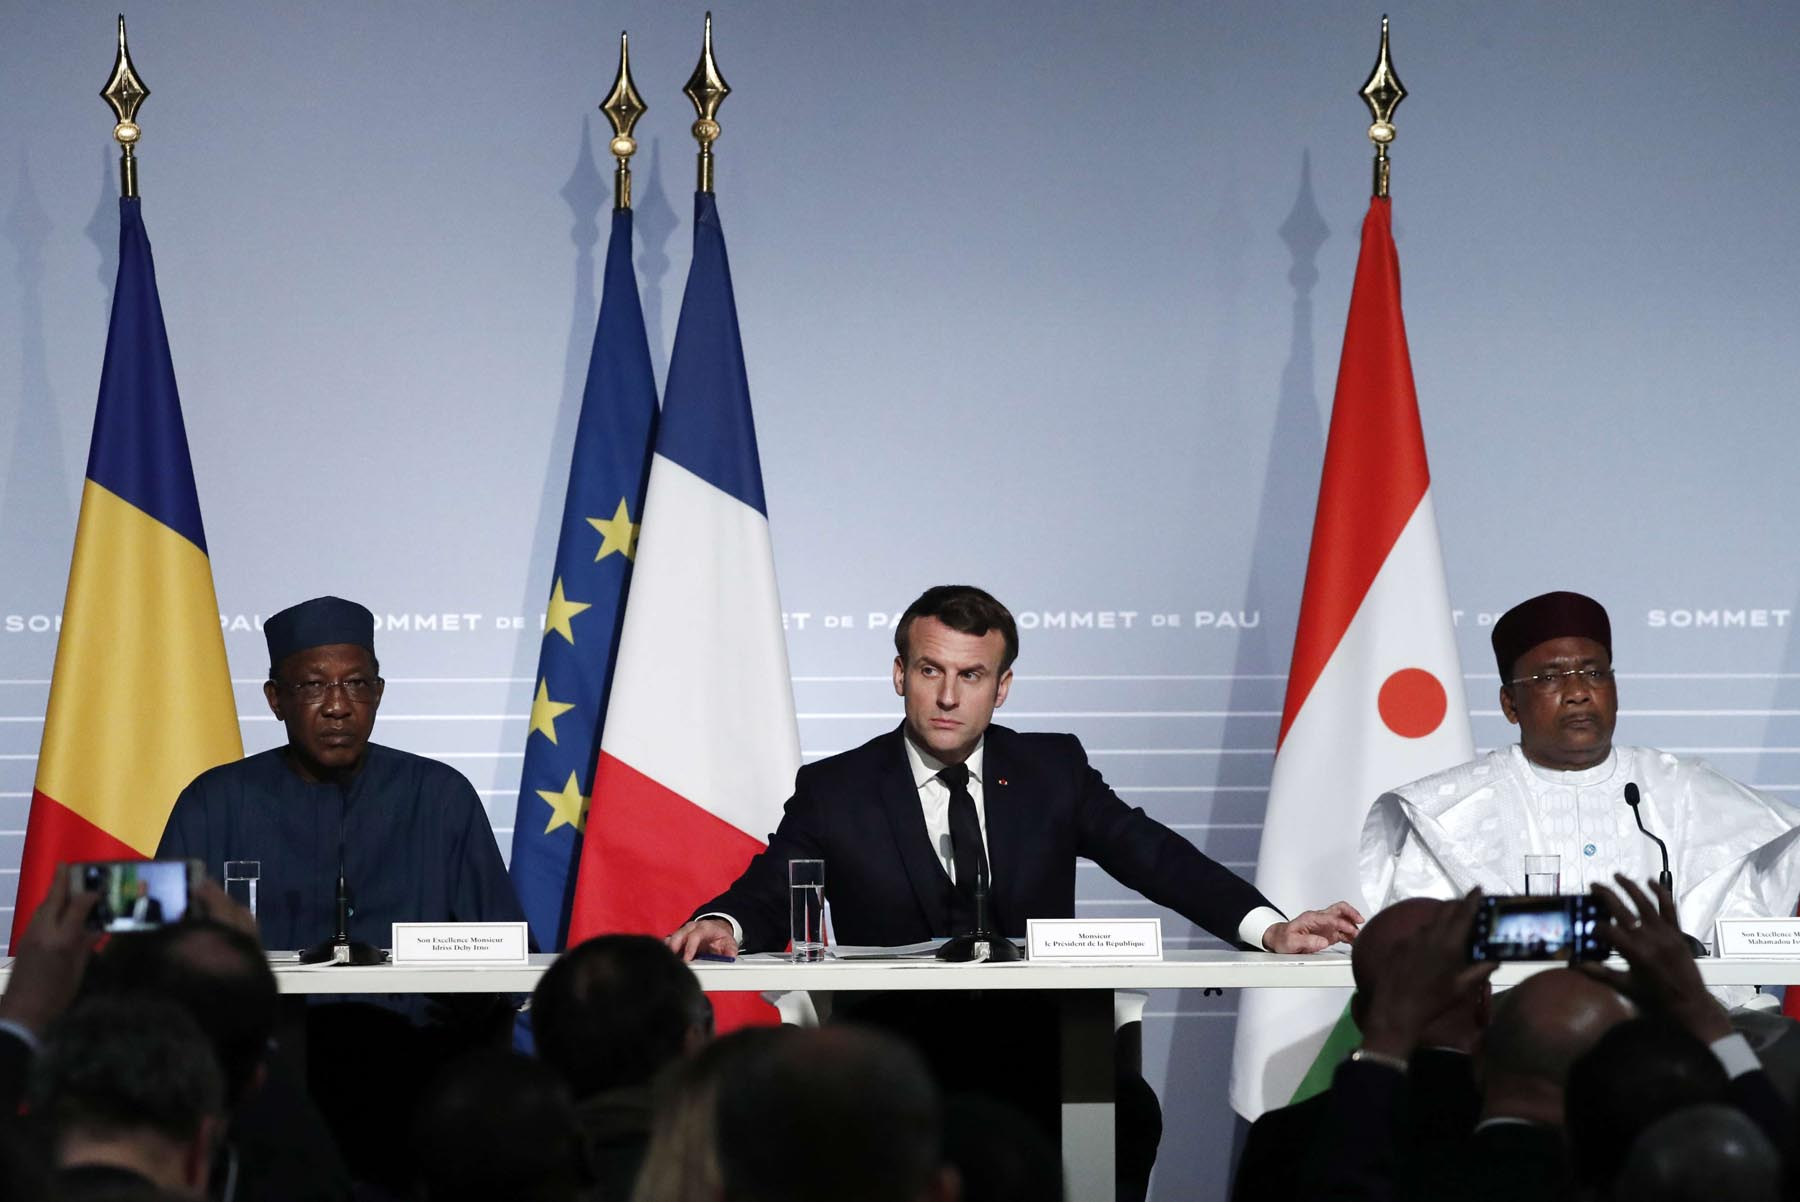 Serious risks. France's President Emmanuel Macron, Niger President Mahamadou Issoufou and Chad's President Idriss Deby at a news conference on the G5 Sahel summit in Pau, France, January 13. REUTERS